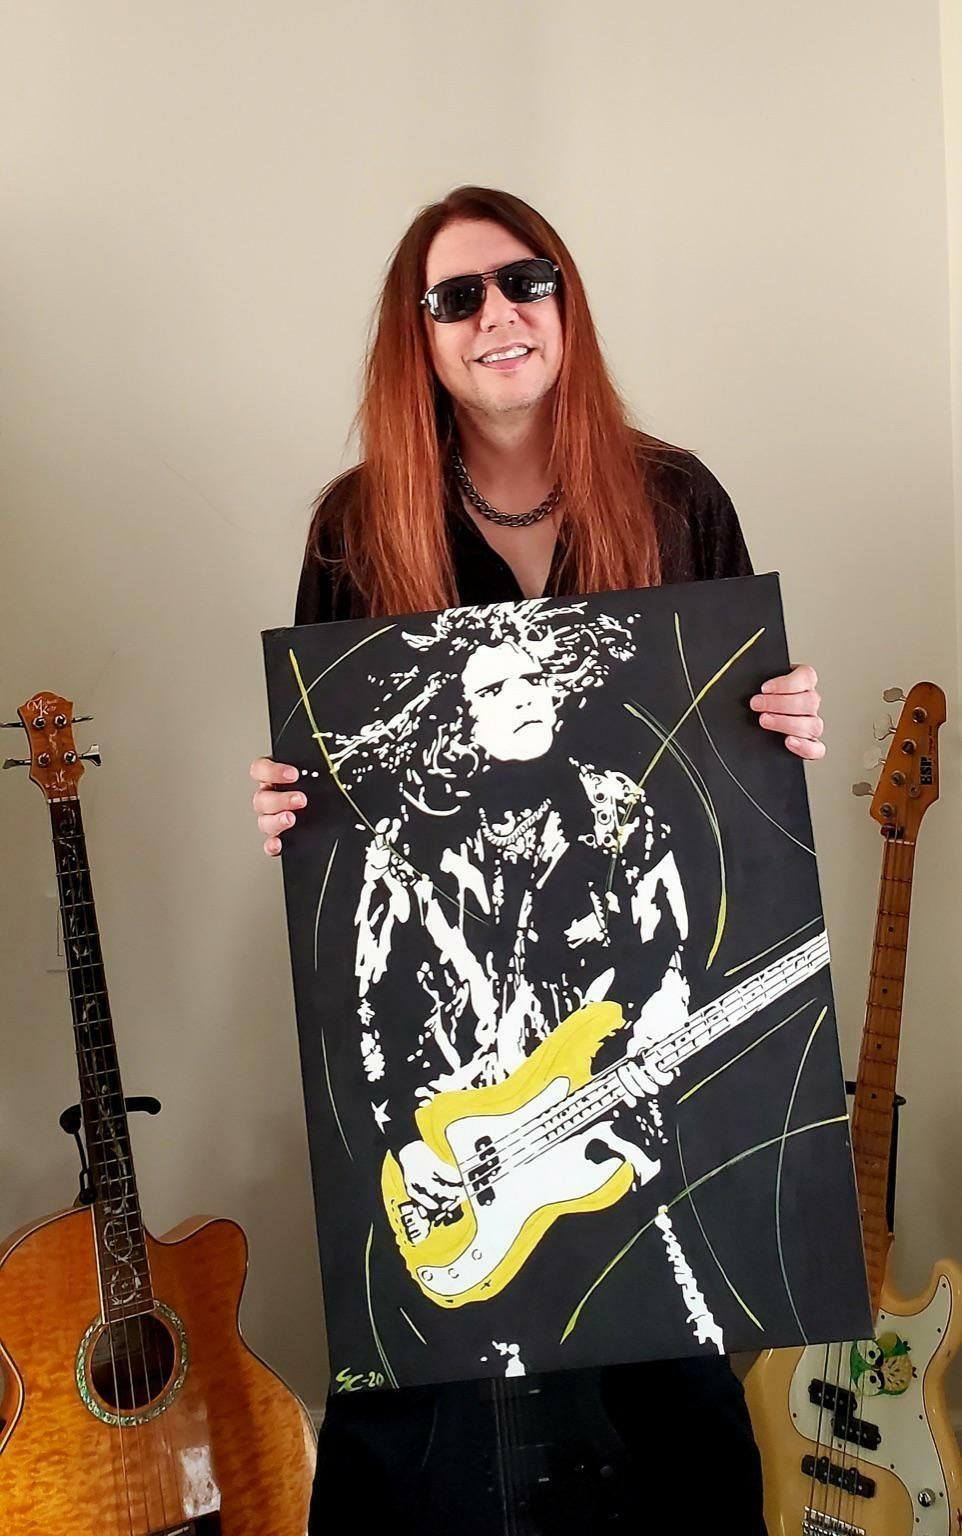 Check out this incredible piece of artwork (no, not the human one!) that was created by Black Rose Art and Design! #FanArtFriday #BlackRoseArtandDesign #martenandersson #mårtenandersson #martenanderssonbass #steelheart #fromclassicaltorock #lizzyborden #starwood #lynchmob #espguitars #ebssweden #emgpickups #daddariostrings #babicz #hipshot #intune #bassist #bassplayer #bassistsaresexy #swedesaresexy #rockstar #bassgod #metal #rockandroll #musician